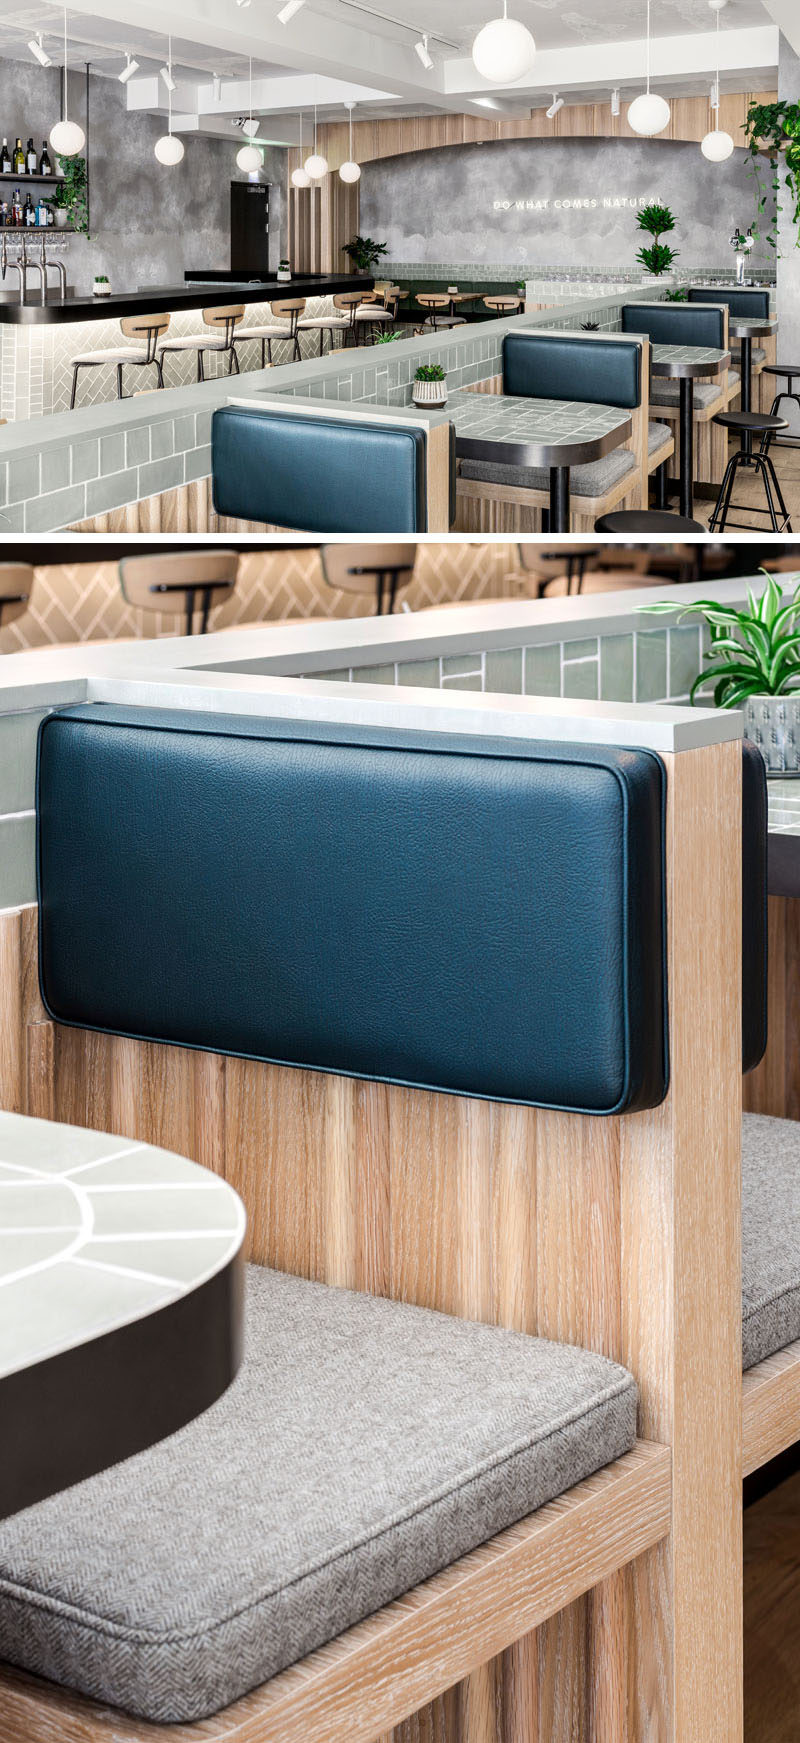 This modern restaurant has a lighter material palette for the food bar enticing day customers, while darker tones on the other side of the interior sets a cosier mood and scene for night service. #ModernRestaurant #RestaurantDesign #RestaurantSeating